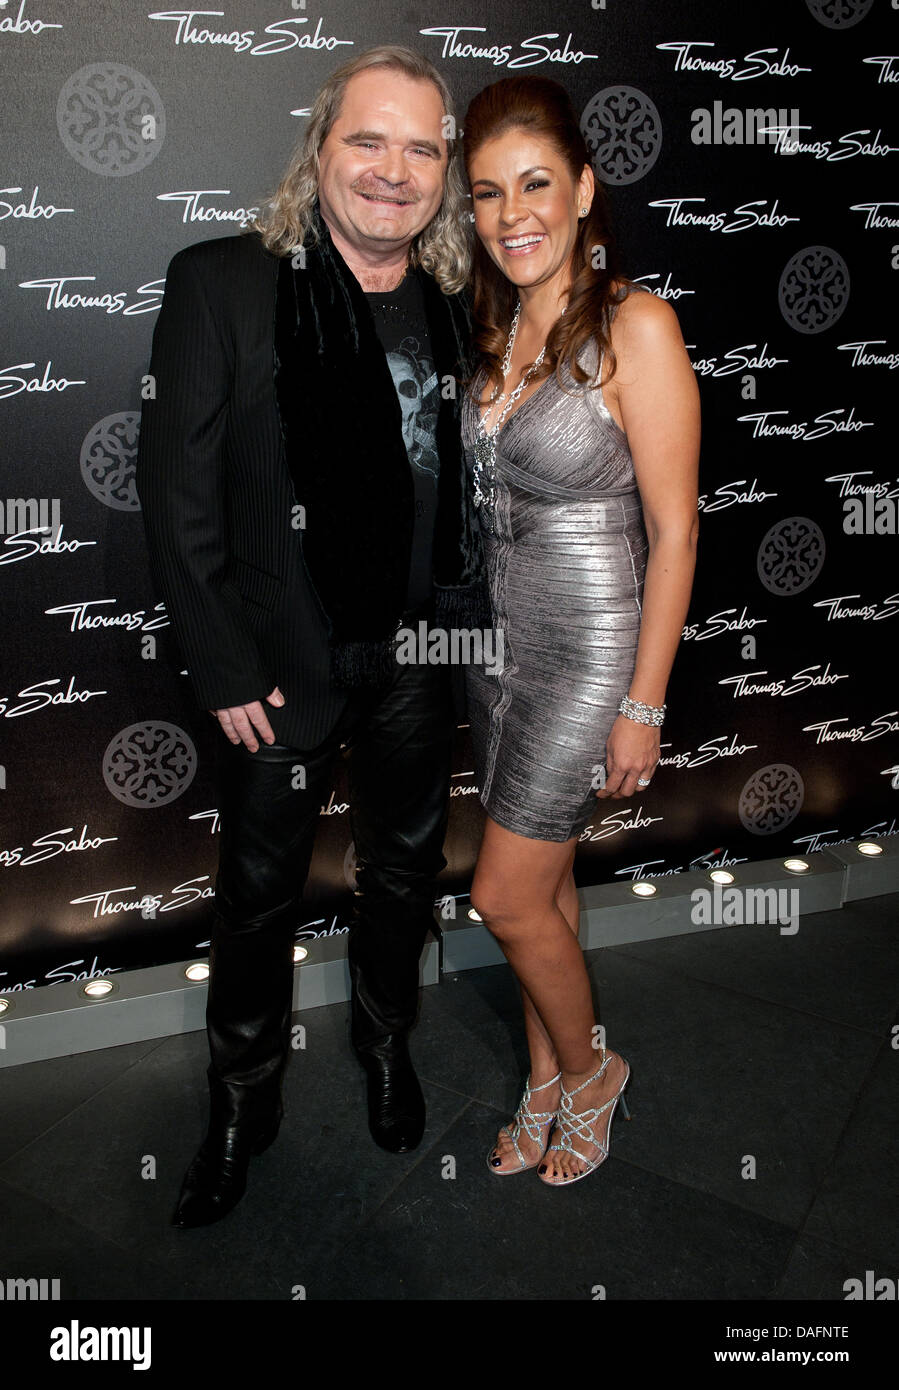 wife german formula stock photos wife german formula stock german jewelery designer thomas sabo and his wife luz enith sabo attend the launch of